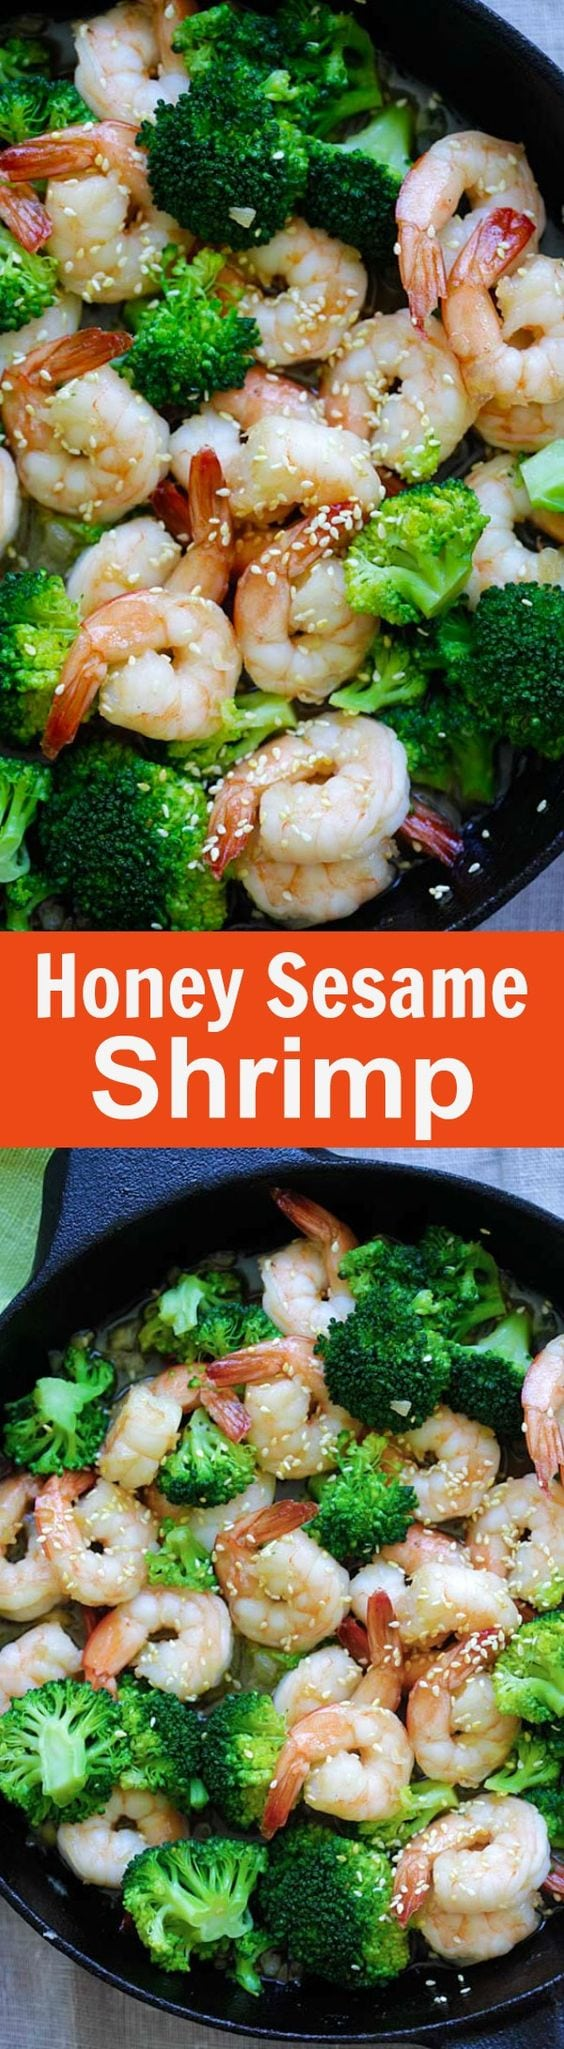 Honey Sesame Shrimp – easy and healthy shrimp stir-fry with broccoli in honey sesame sauce. Takes only 15 minutes to make | rasamalaysia.com